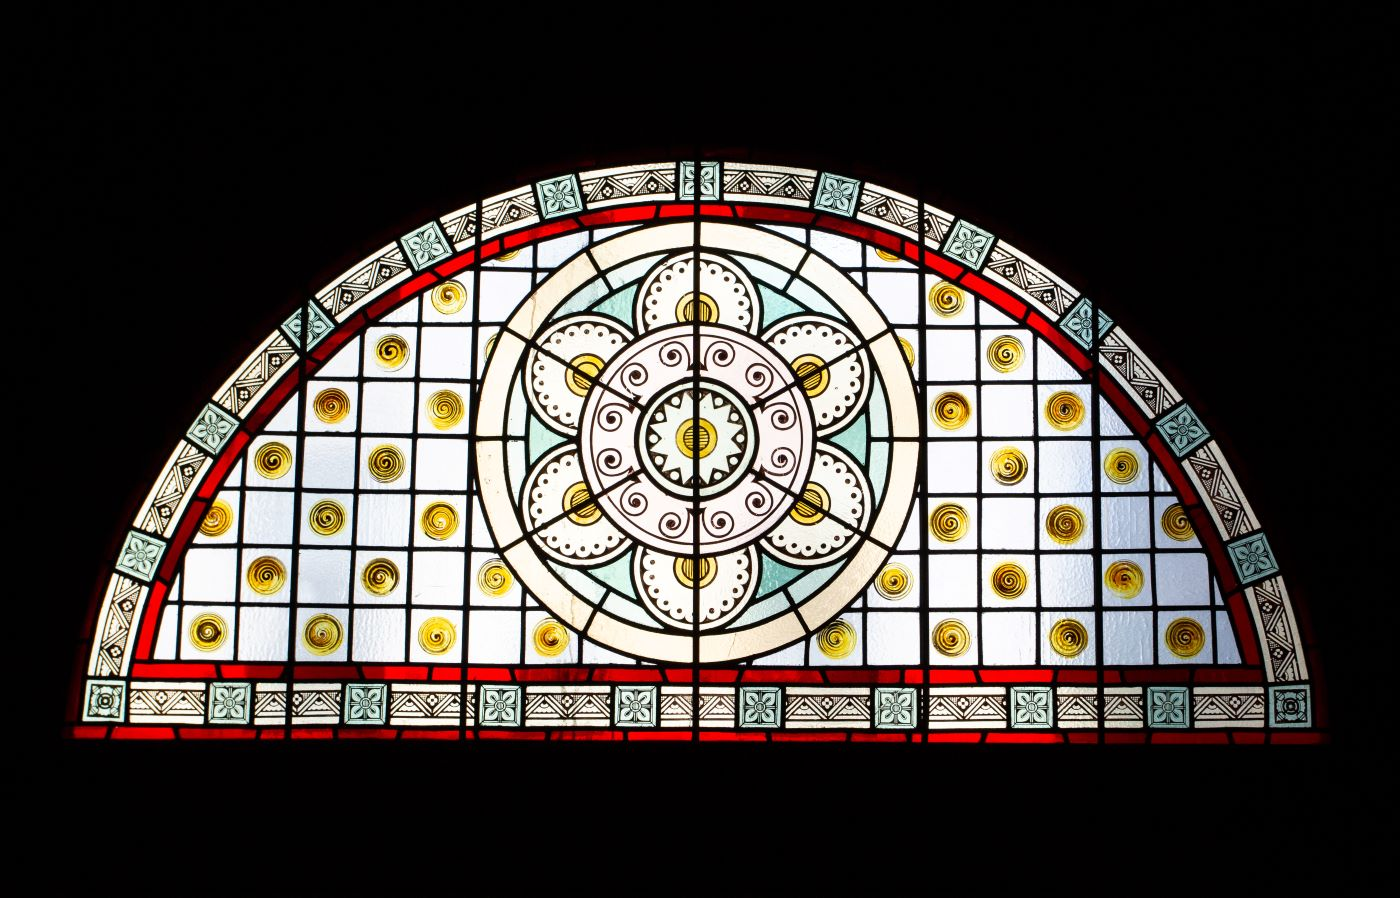 Othmer Library Stained Glass